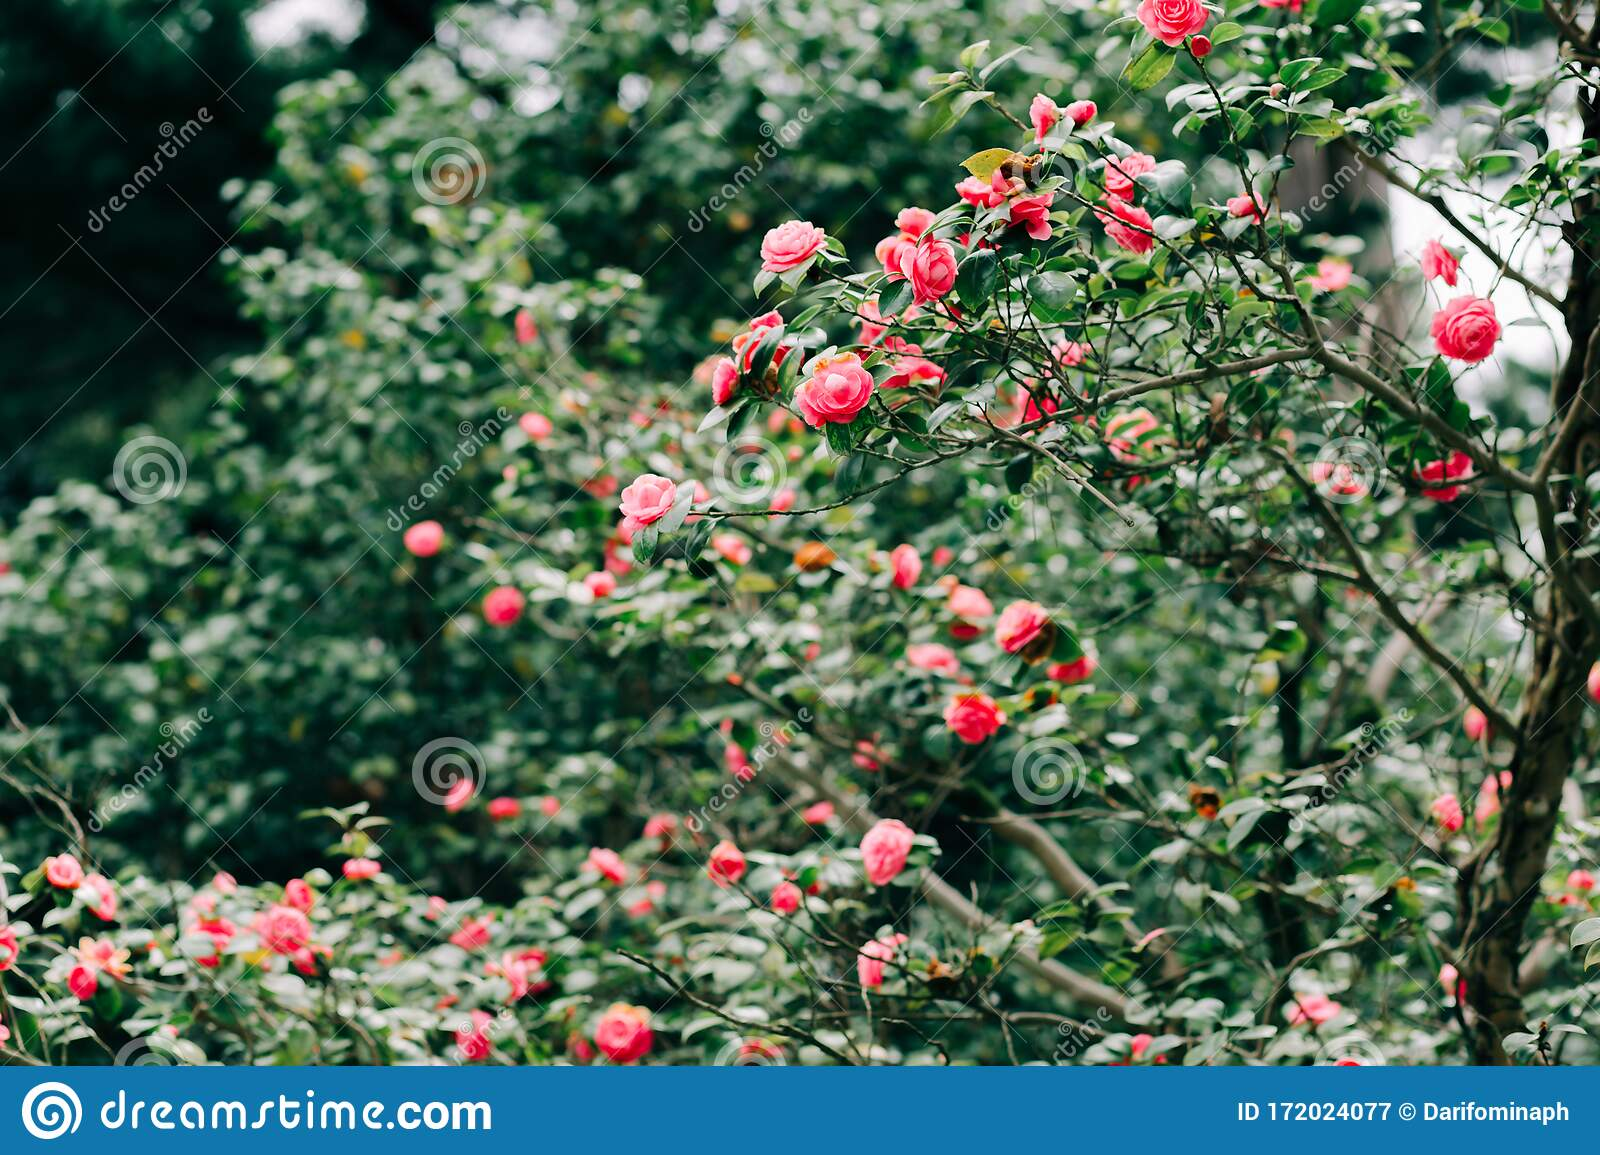 Beautiful Chinese Rose Flowers On The Branches Of Shrubs In The